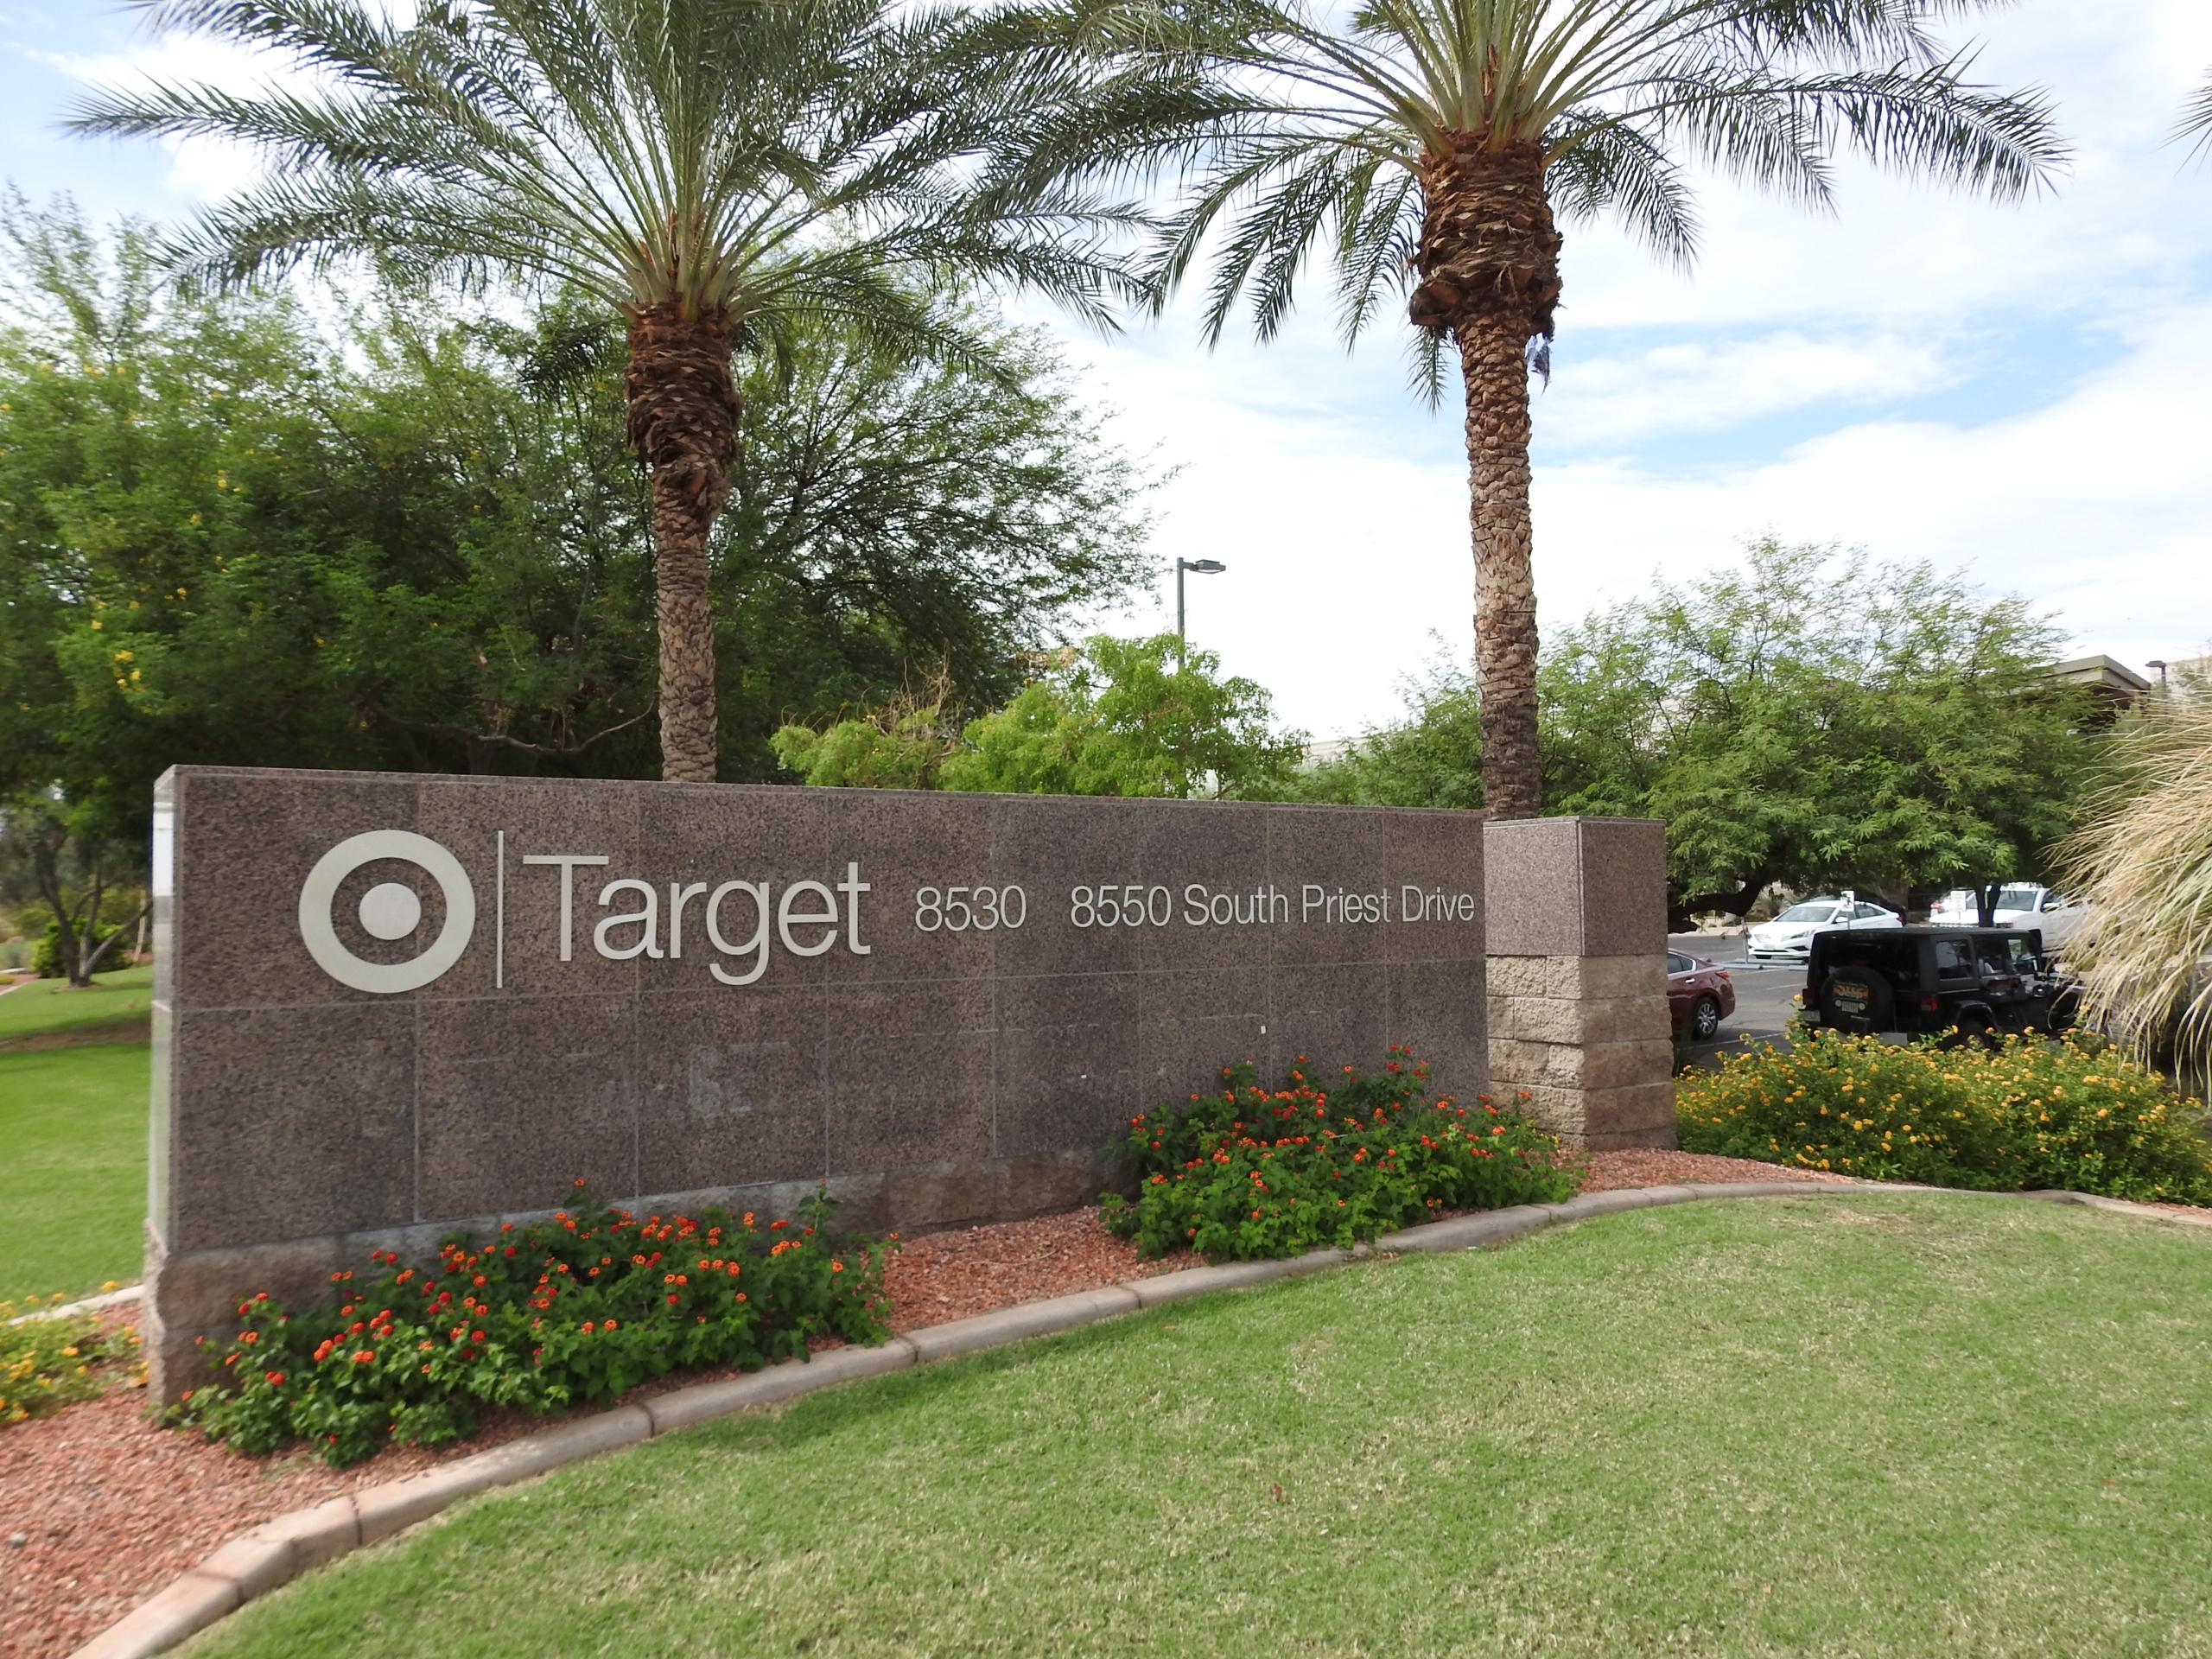 Entrance to a Target support center in Tempe, Arizona.